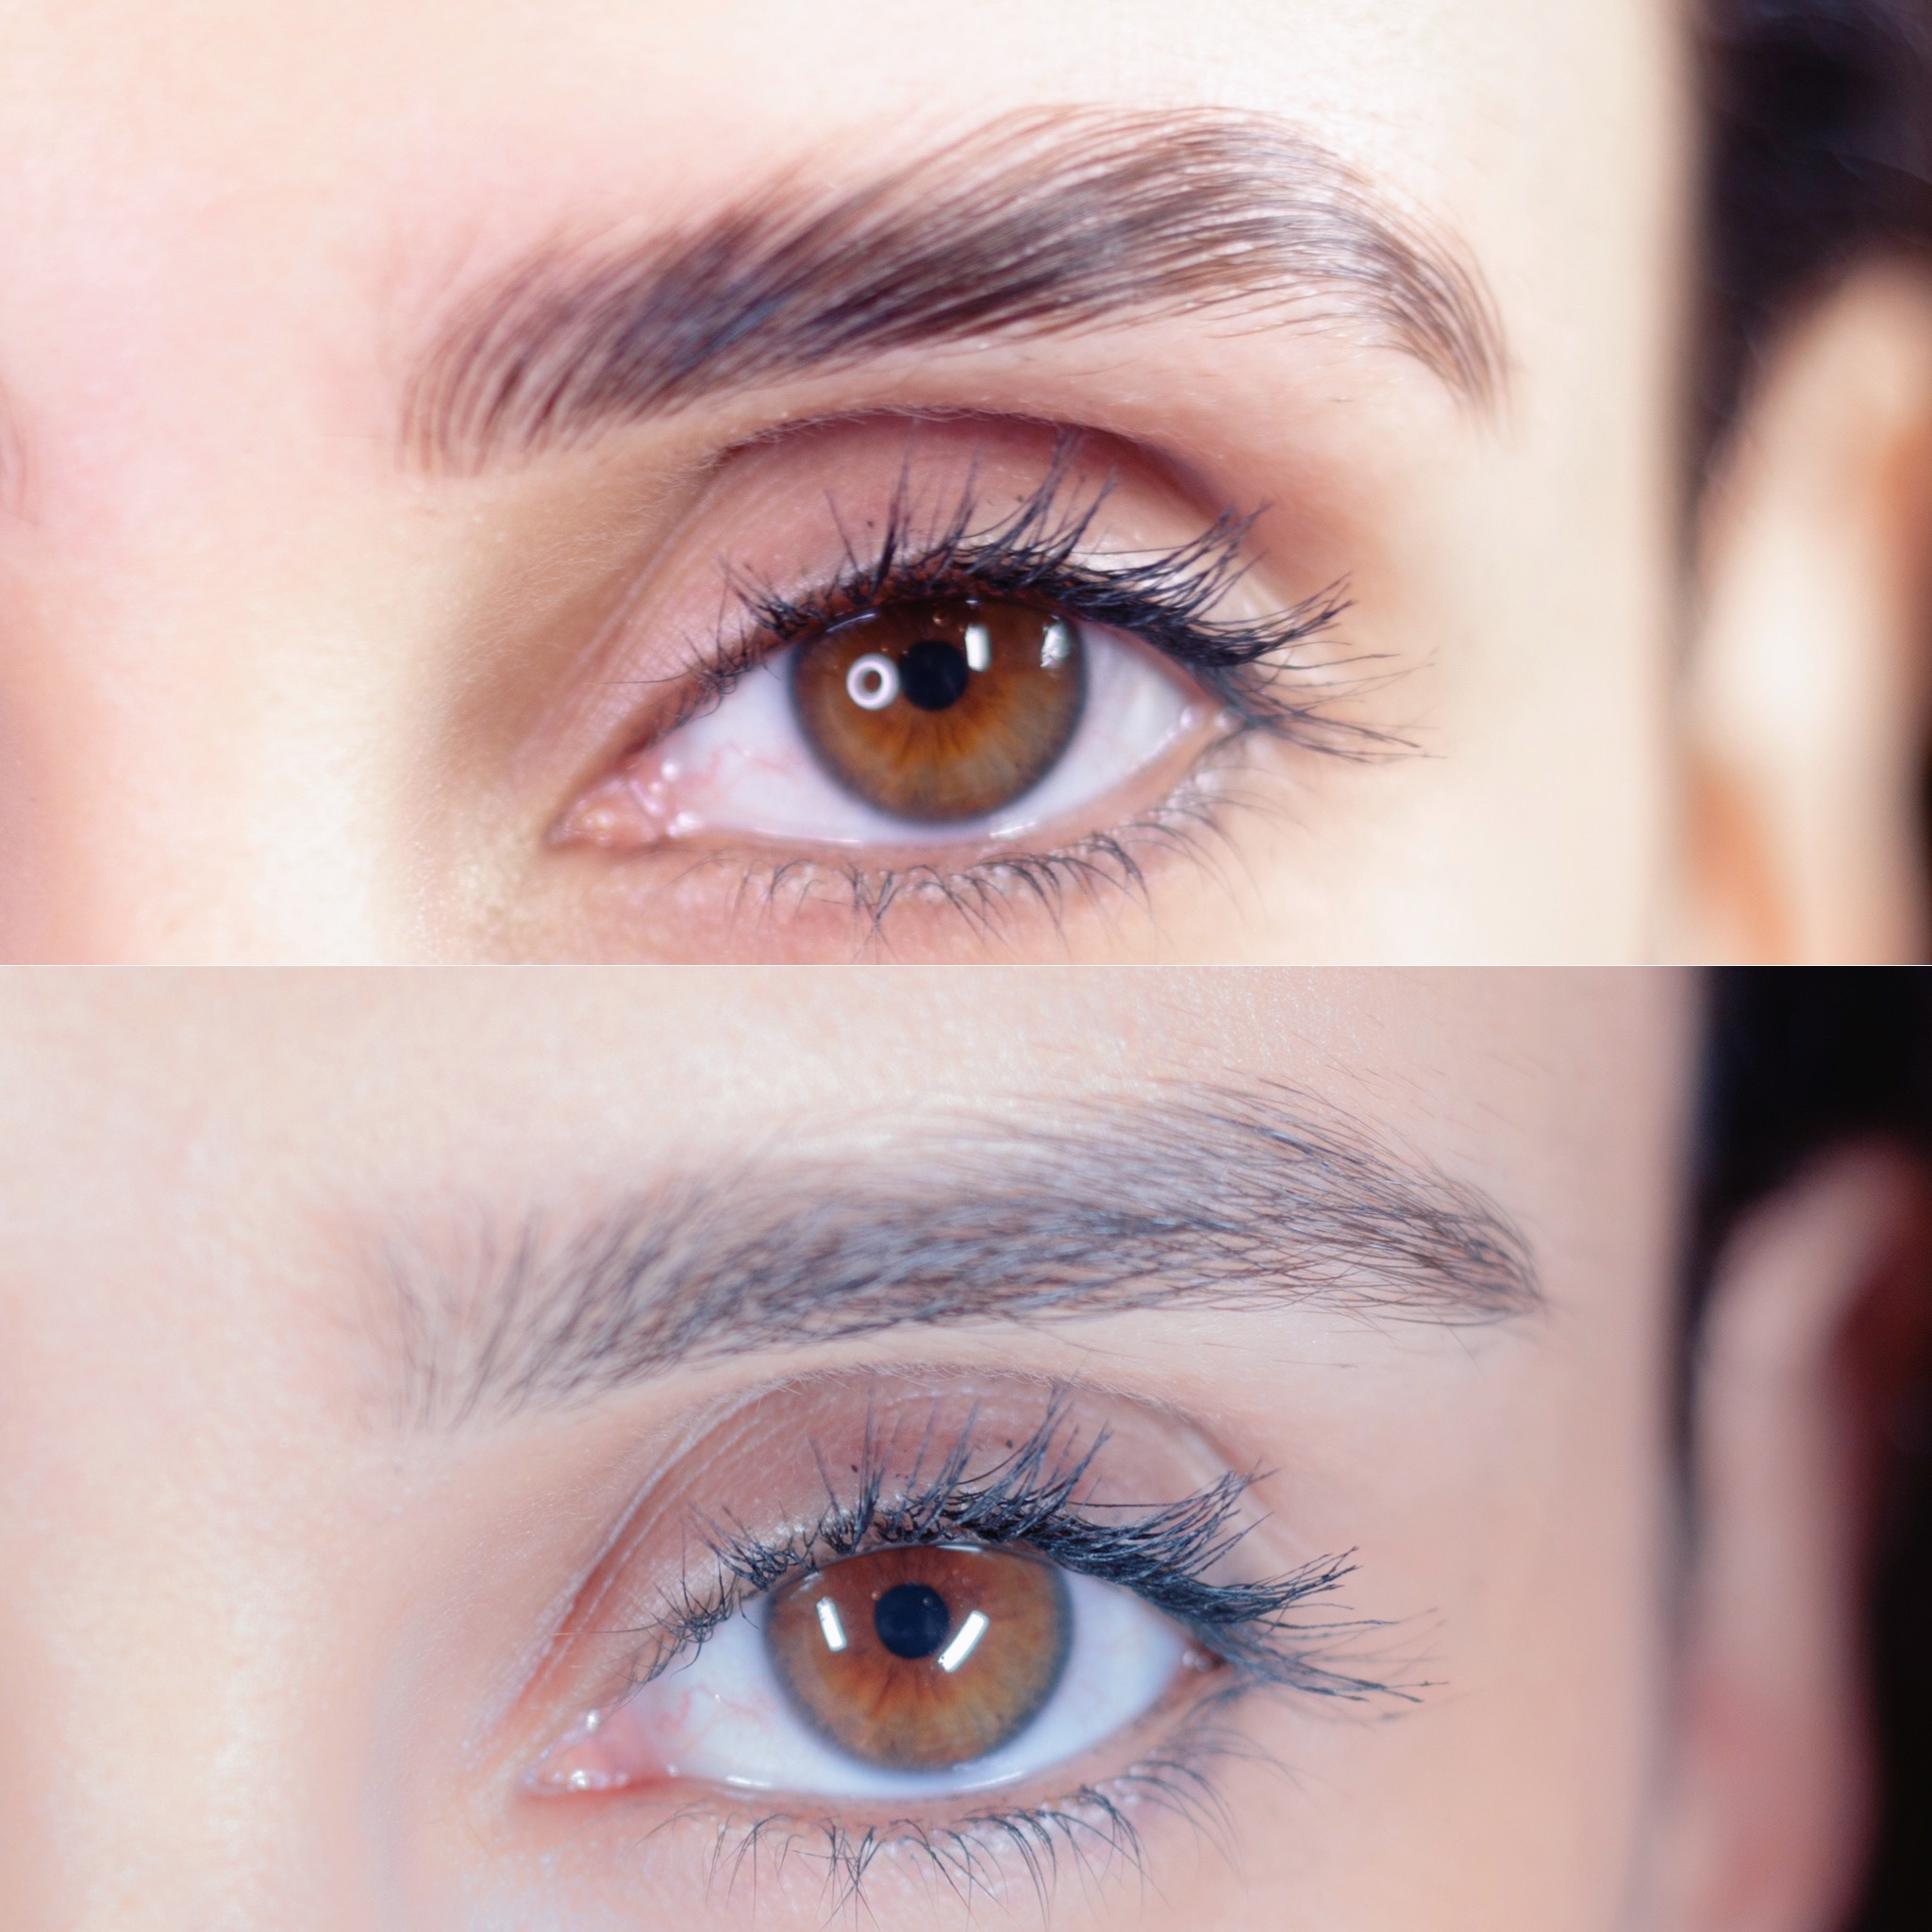 See the difference the eyebrow services here at Brau will make for you.